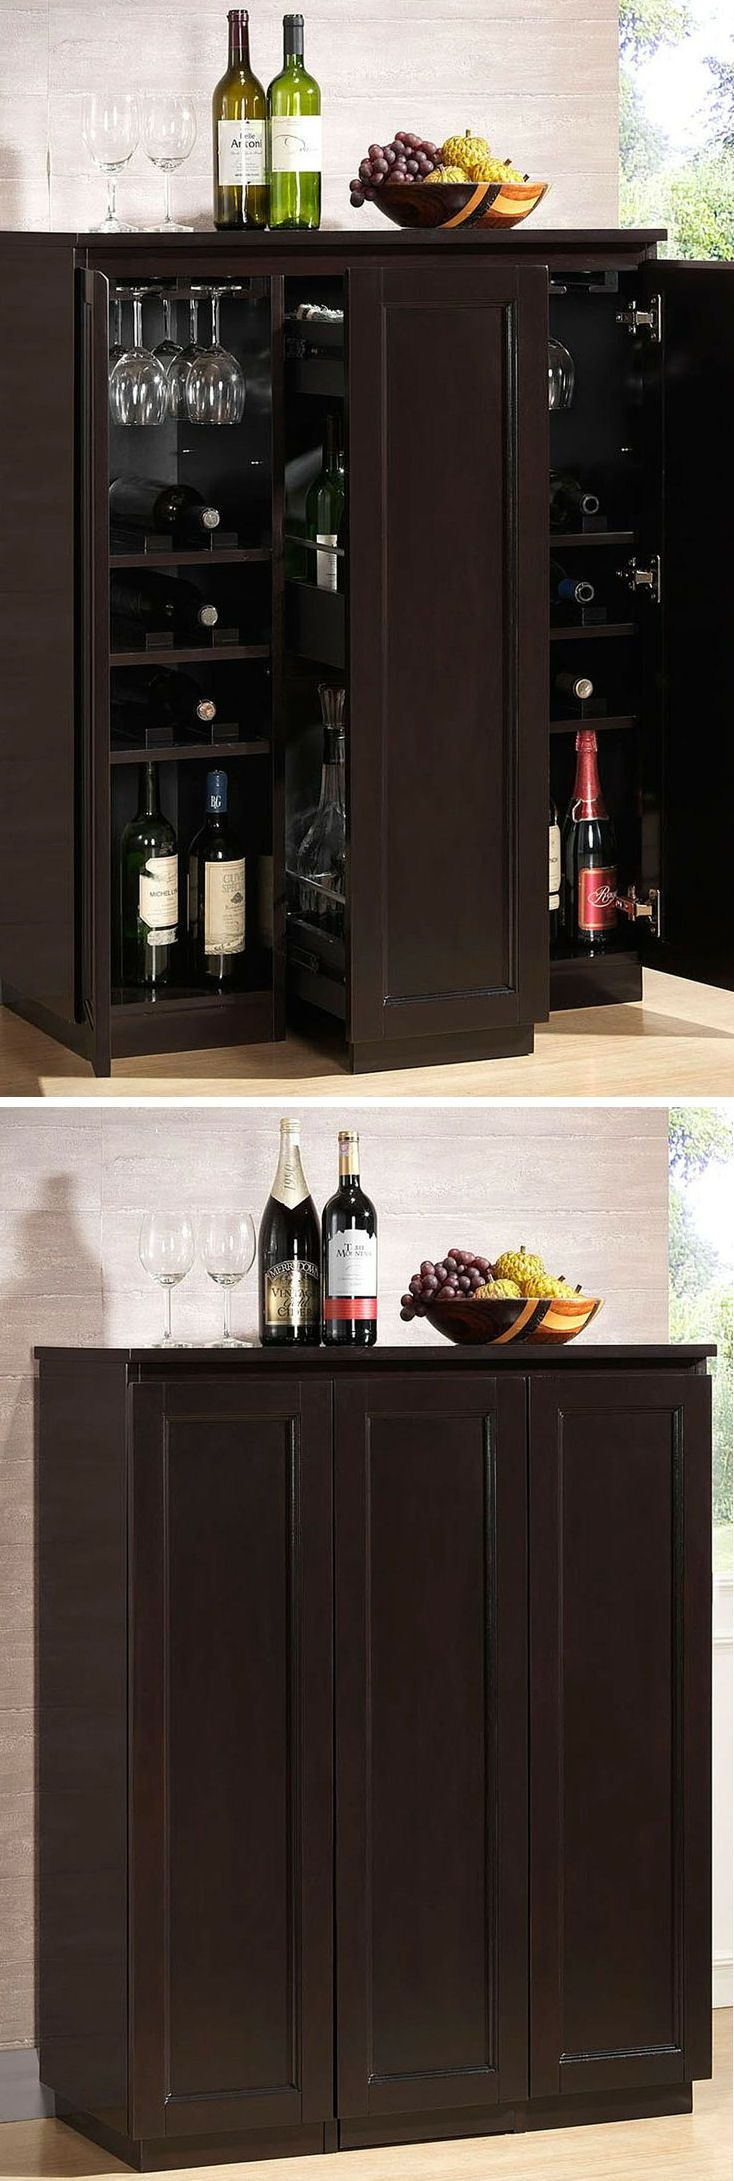 Enclosed Modern Bar Cabinet // #furniture #wine #spacesaving  I like the idea of hiding away the bare ware & liquor, I'm not a fan of it sitting out everywhere and getting dusty